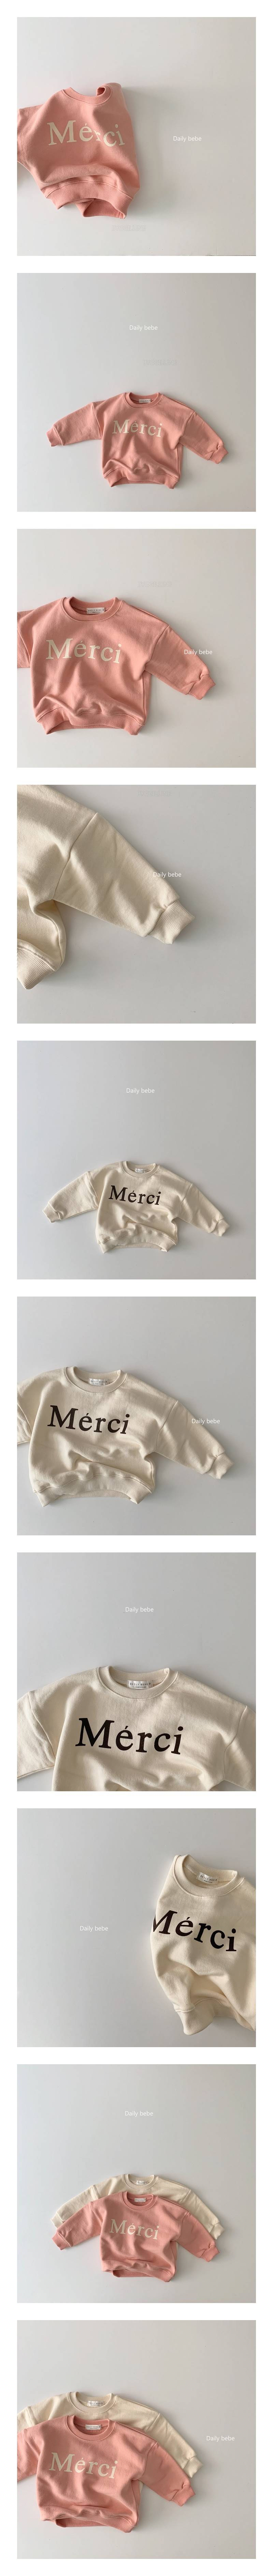 DAILY BEBE - Korean Children Fashion - #Kfashion4kids - Merci MtM T